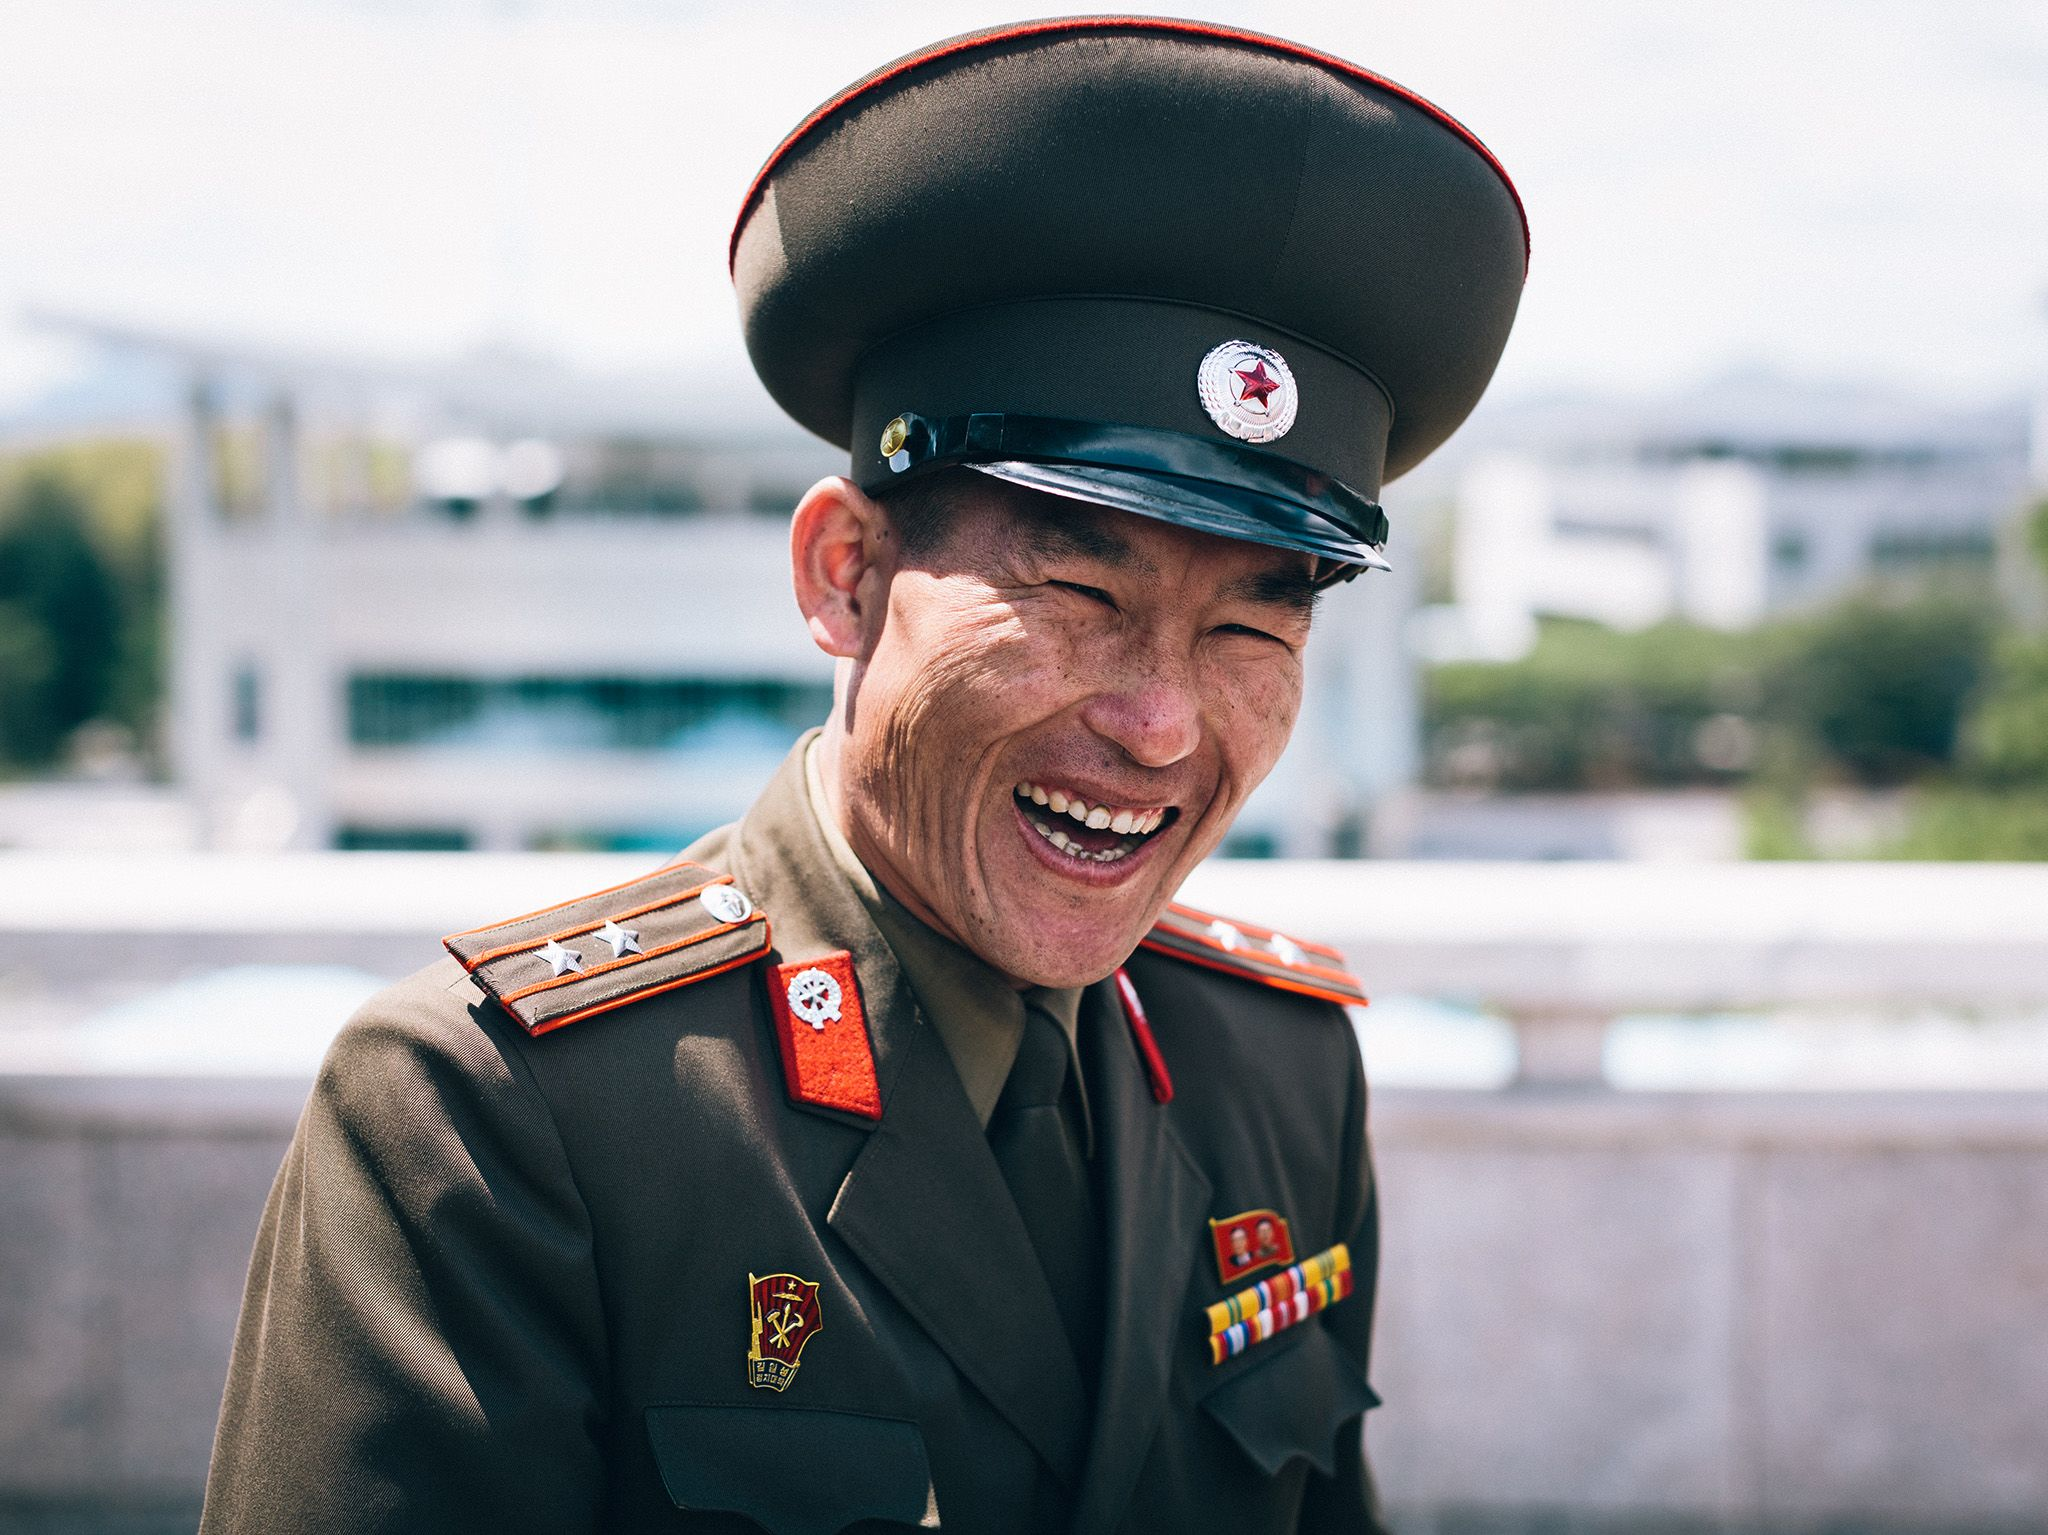 North Korea:  Military guard. This image is from North Korea: Michael Palin's Journey. [Foto del giorno - December 2018]